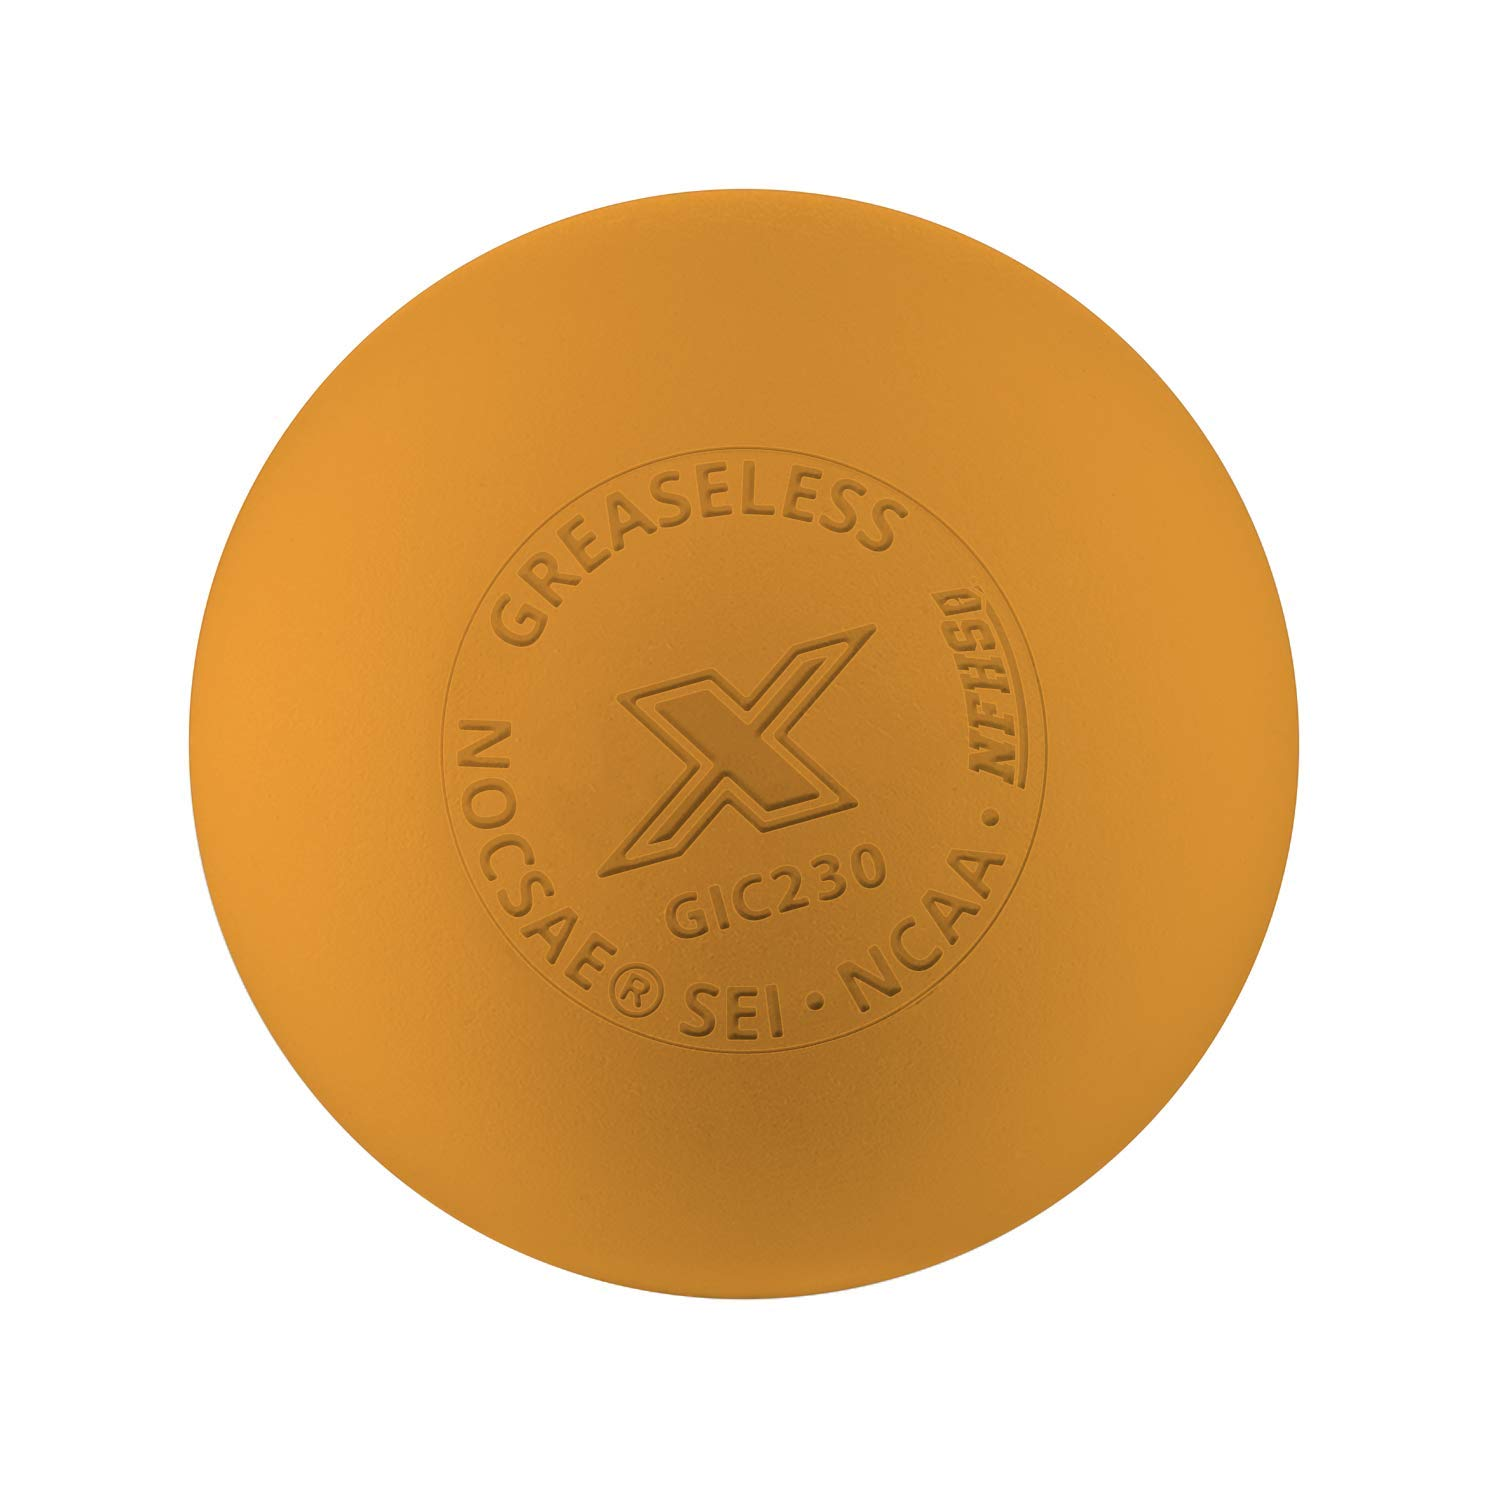 The Pearl by Guardian - Greaseless Lacrosse Balls (Orange, 3 Pack)